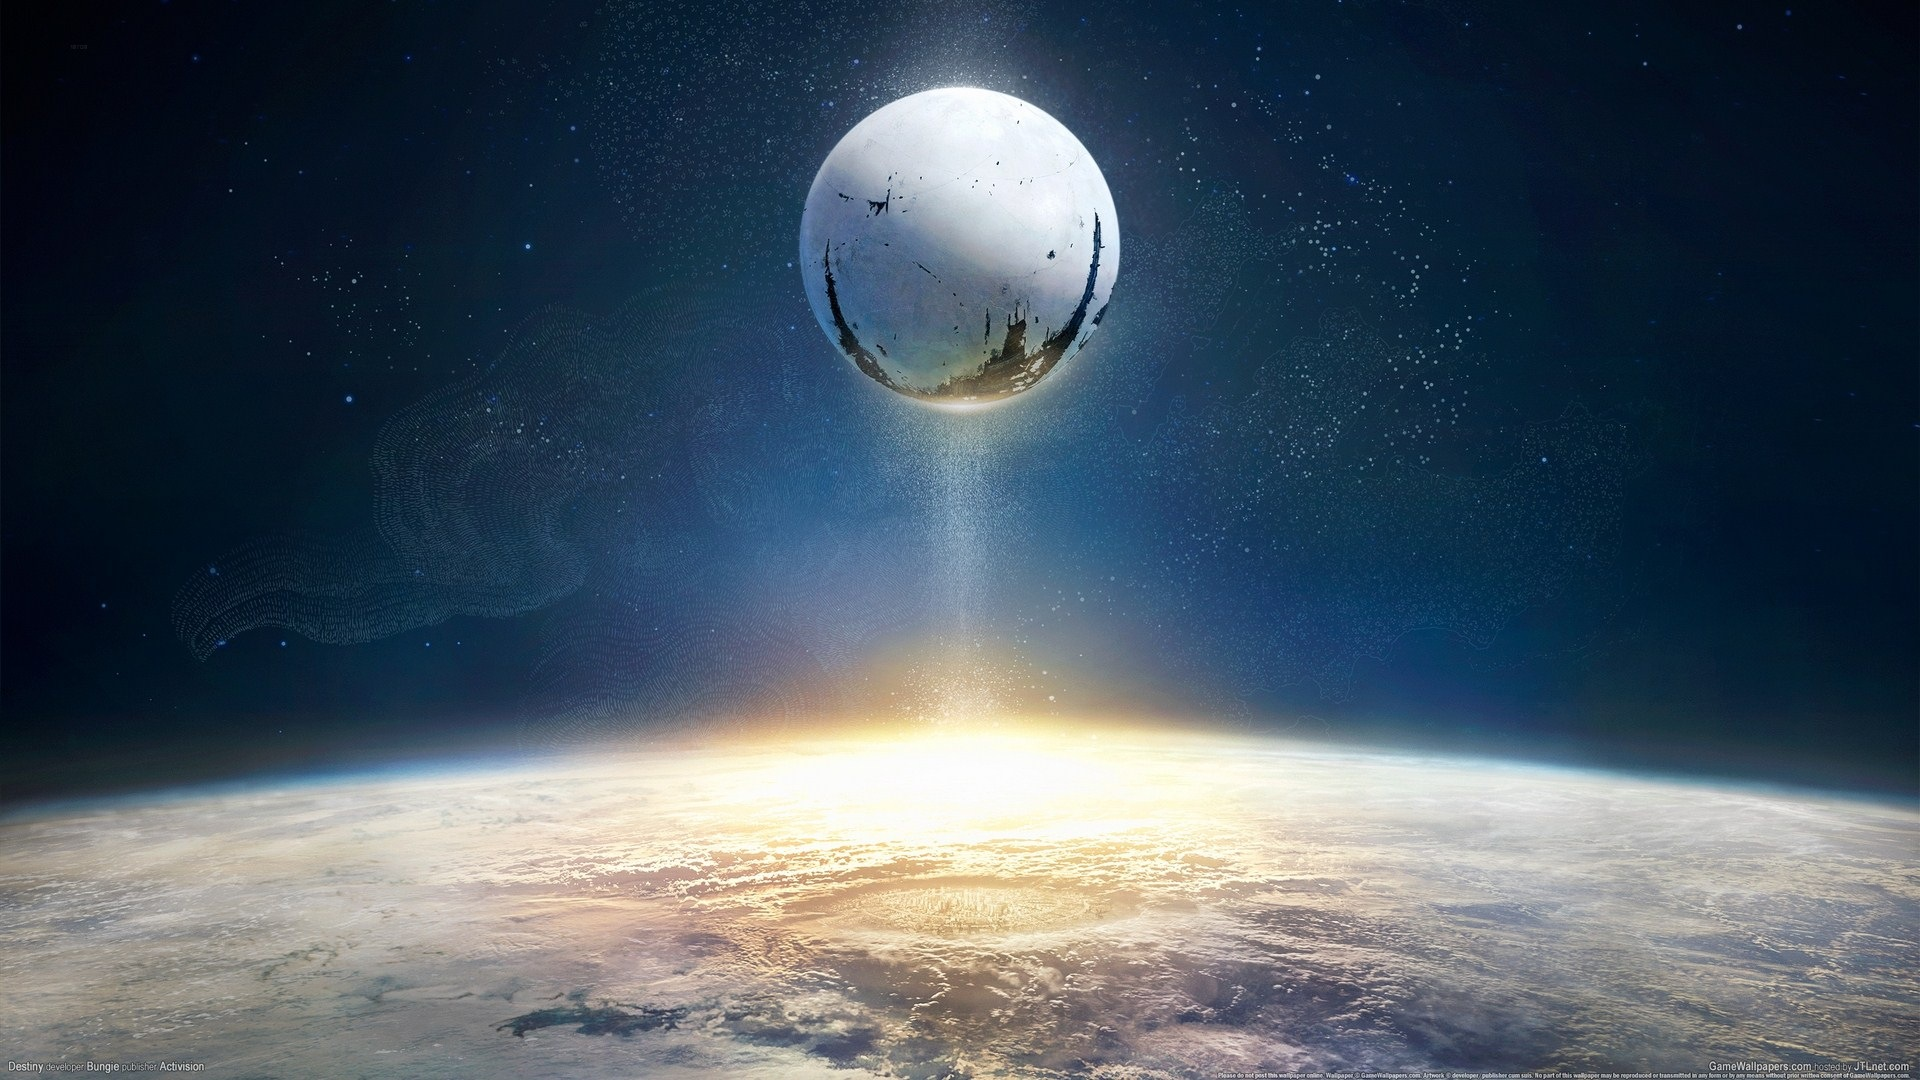 Destinywallpaper.jpg